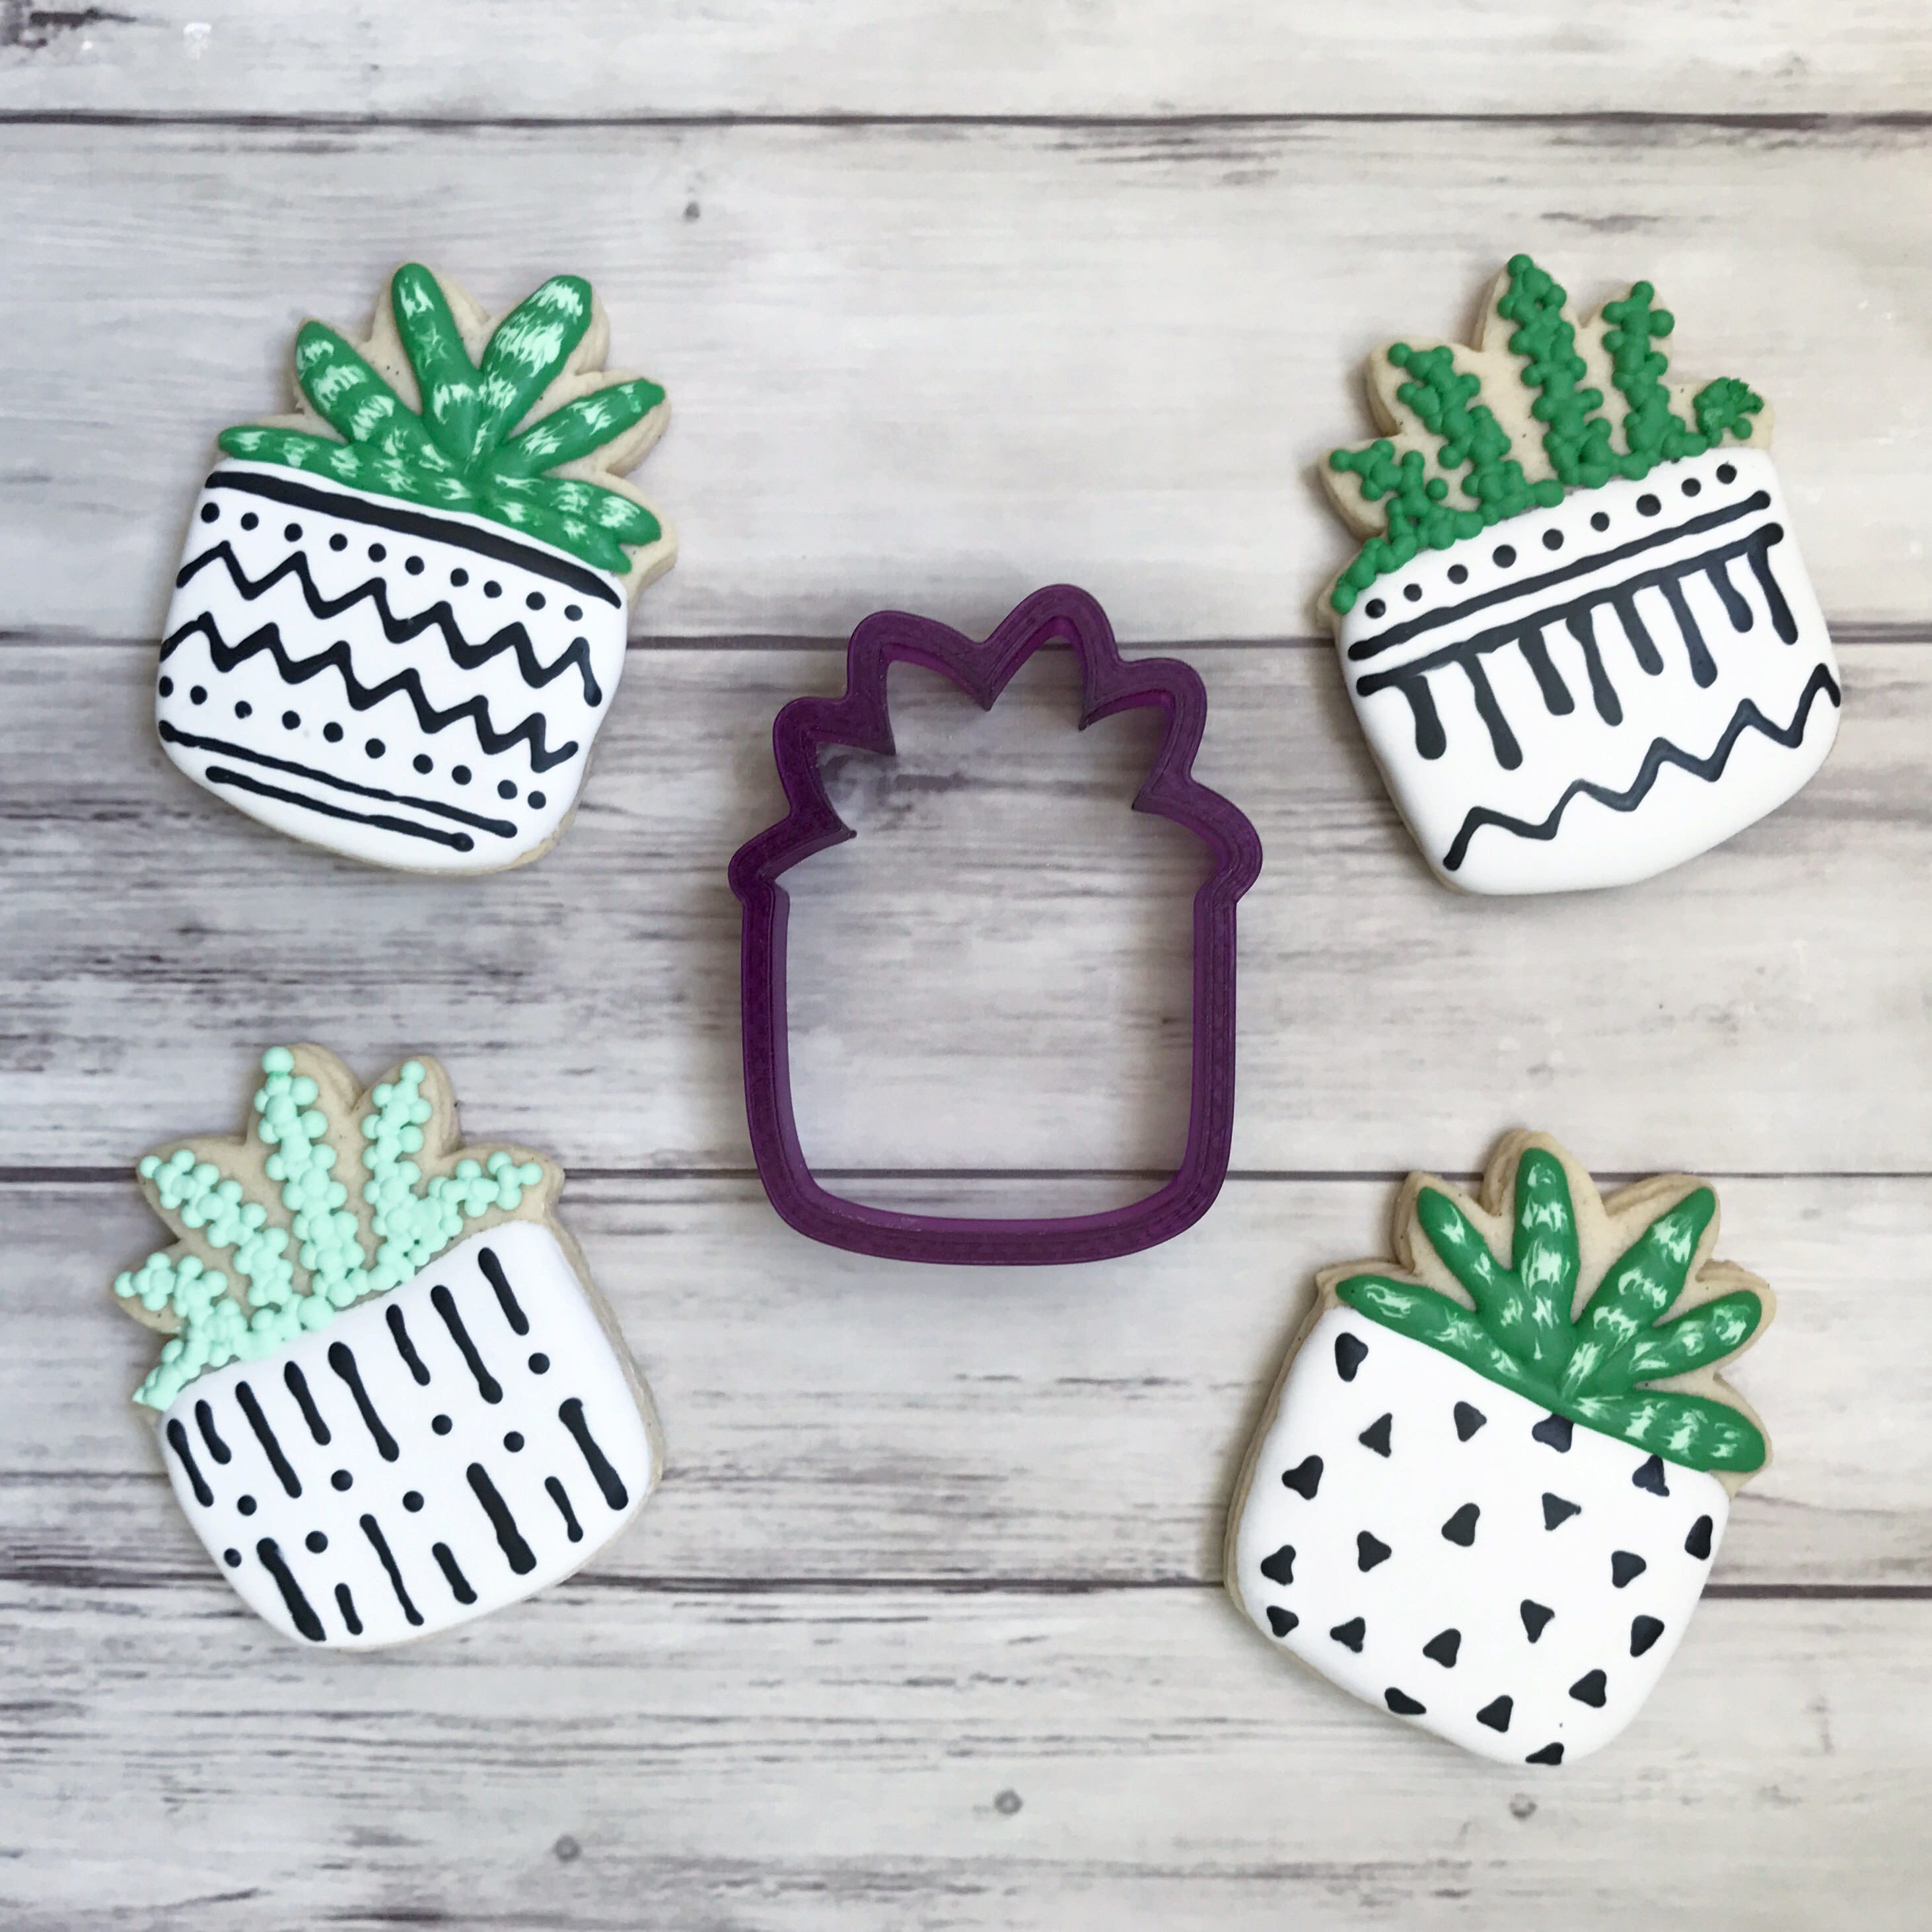 Potted Flower Potted Plant #1 Cookie Cutter and Fondant Cutter and Clay Cutter